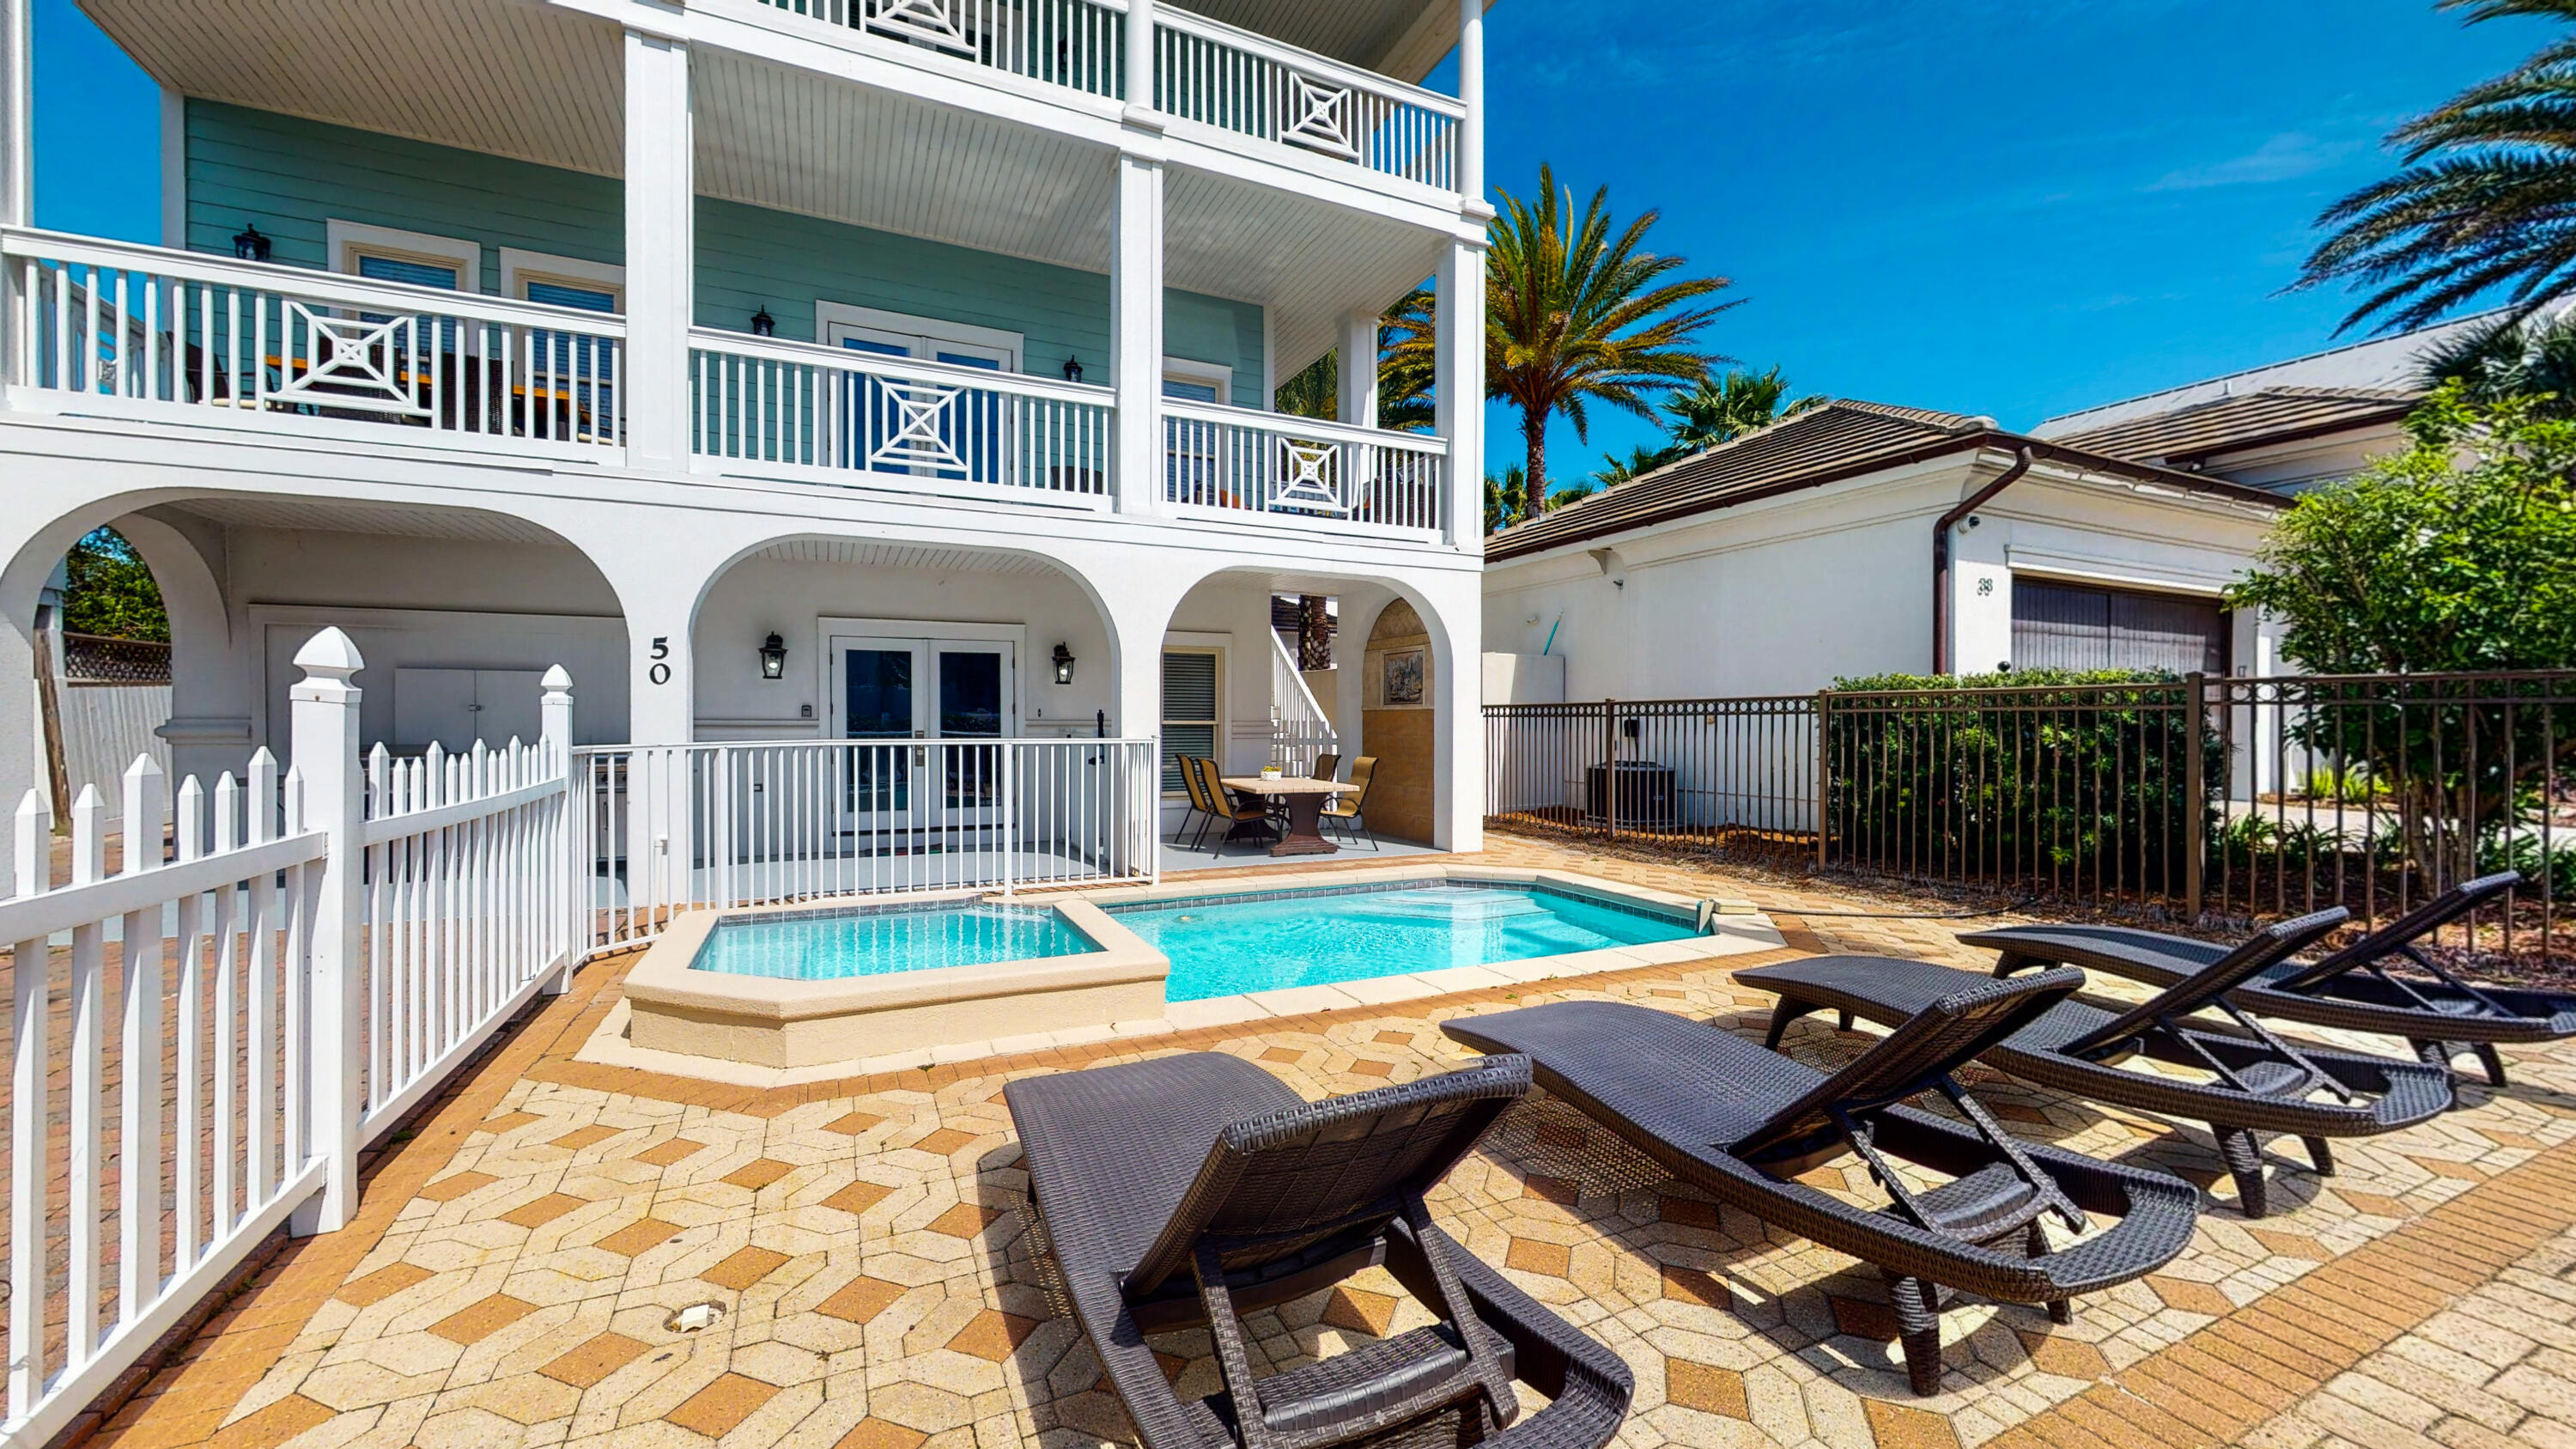 """Welcome to ''Coconut Castle''.  This Frangista Beach home is supremely positioned less than a block from the deeded beach access for the community. There is already over $160,000 of rental income on the books for 2021.  The current management company, Beach Reunion, is making available a rental income guarantee of $180,000 for the first year of ownership if you keep the home on their rental program.  Opportunities like this do not come along very often!This large home is being sold fully furnished and offers a total of 5 king bedrooms each with their own private baths, 2 spacious bunk rooms with a shared bath, another king bedroom, and a queen loft area. The 1st floor boasts both a game room and media room complete with pool table, wet bar, and full-sized refrigerator. Also located on the 1st floor is 1 king bedroom with private bath and the 2 bunk rooms with shared bath, all with access to the private splash pool and overflow spa.  The 2nd floor contains the sprawling living room, dining area and kitchen with large granite island/breakfast bar and all stainless-steel appliances. Also 2 more king bedrooms, 1 with private bath.  The 3rd floor offers a private balcony and sleeping arrangements for 8. You will find the master king suite with built-in bunk beds, wet bar with mini fridge and spacious private bath with a jacuzzi tub. Also, two more king suites with their own private baths.  On the 4th floor you will find the look-out tower with gulf views and the queen loft area that provides 360-degree views.  Call to arrange your private showing of """"Coconut Castle"""" TODAY!"""